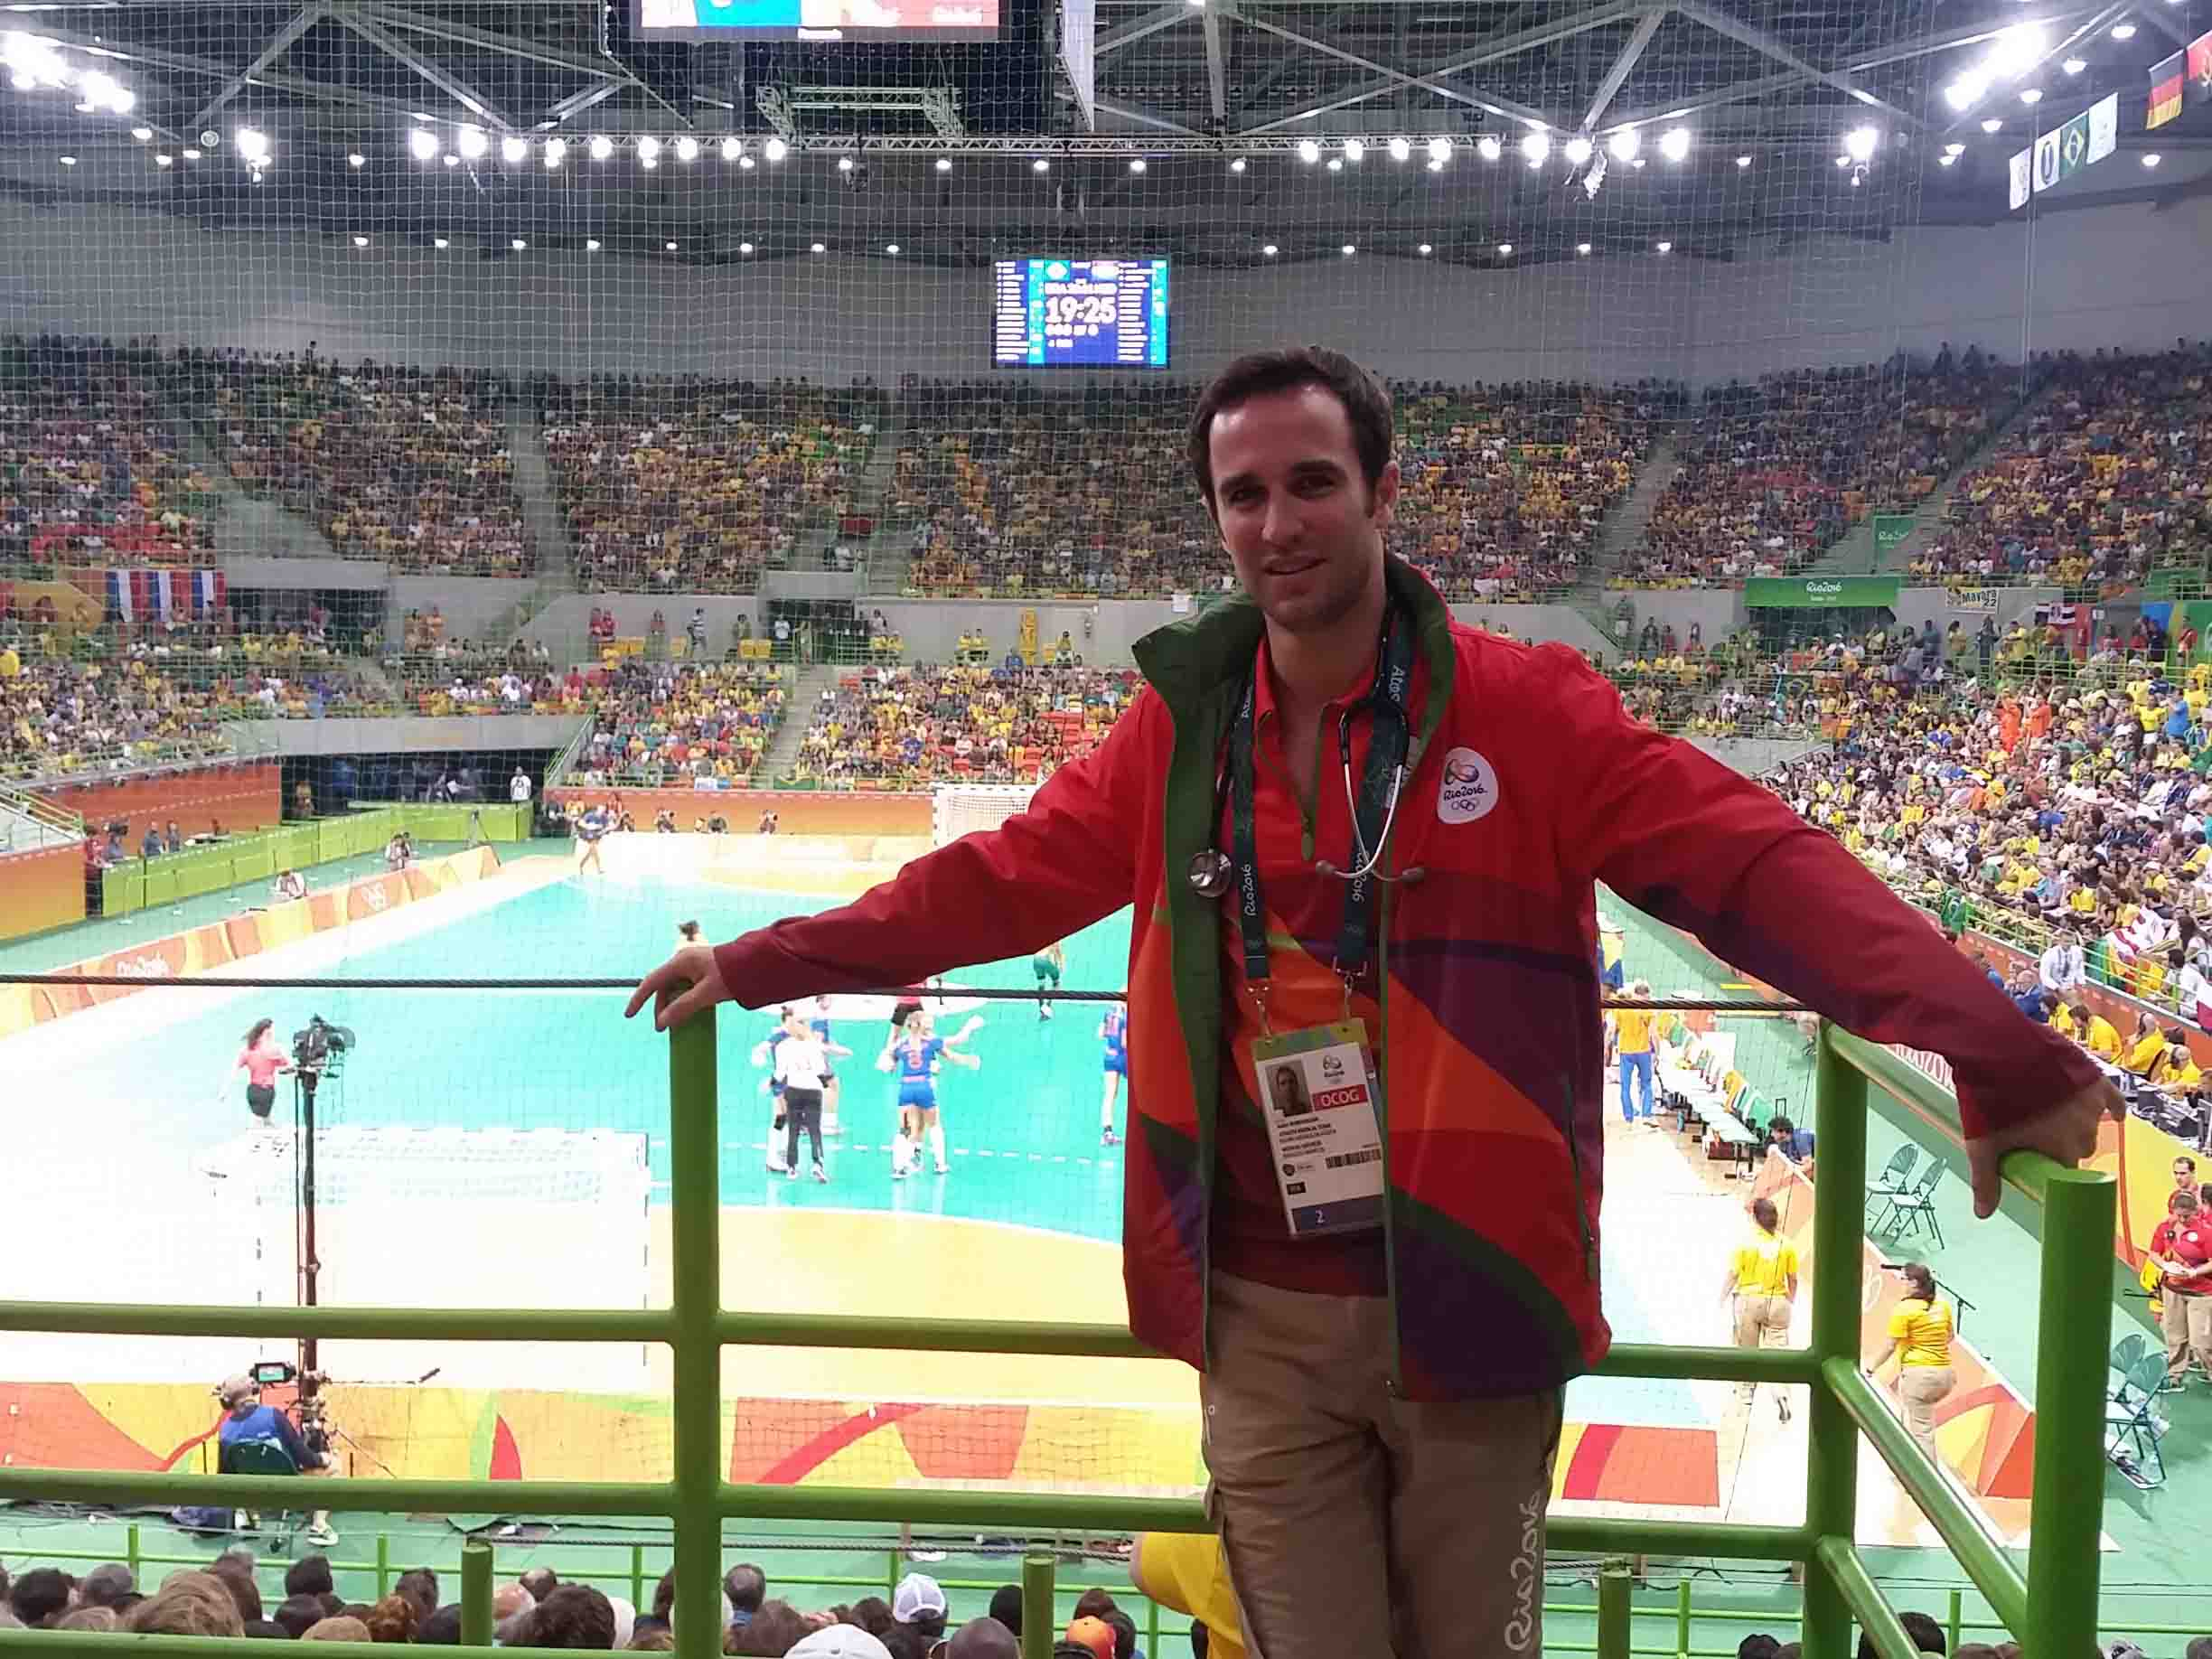 Justin posing in front of handball court at Rio Olympics